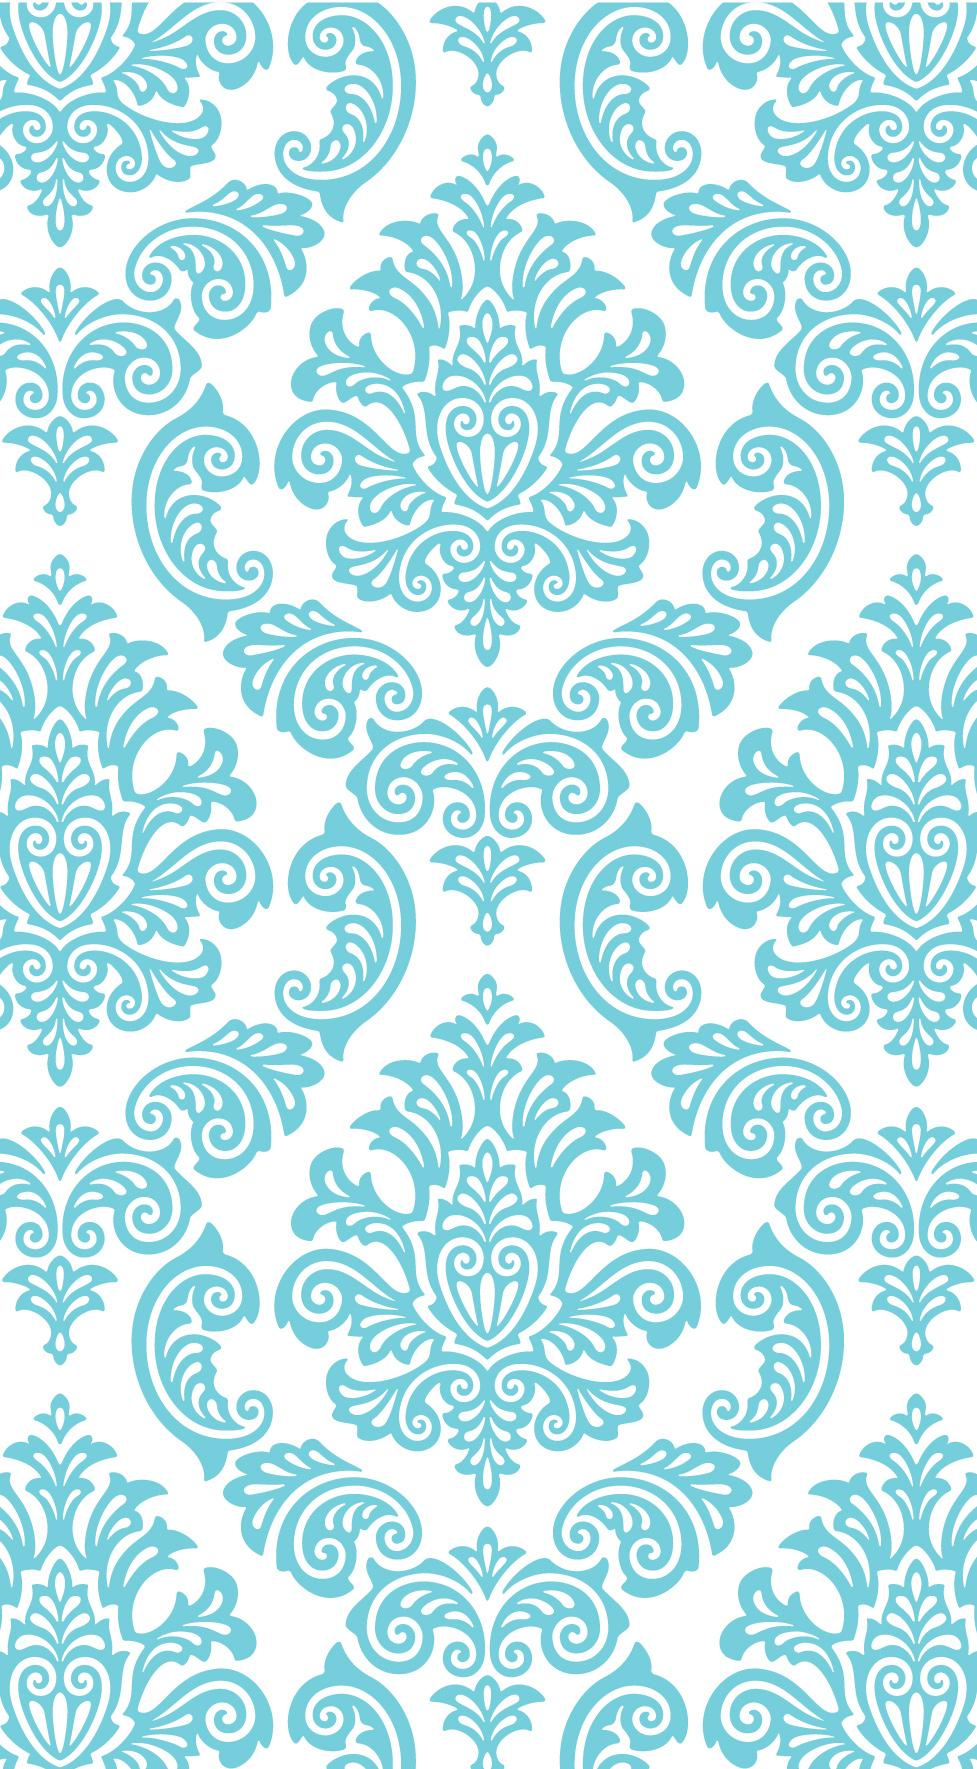 Tiffany Blue Wallpaper for Bedroom - WallpaperSafari